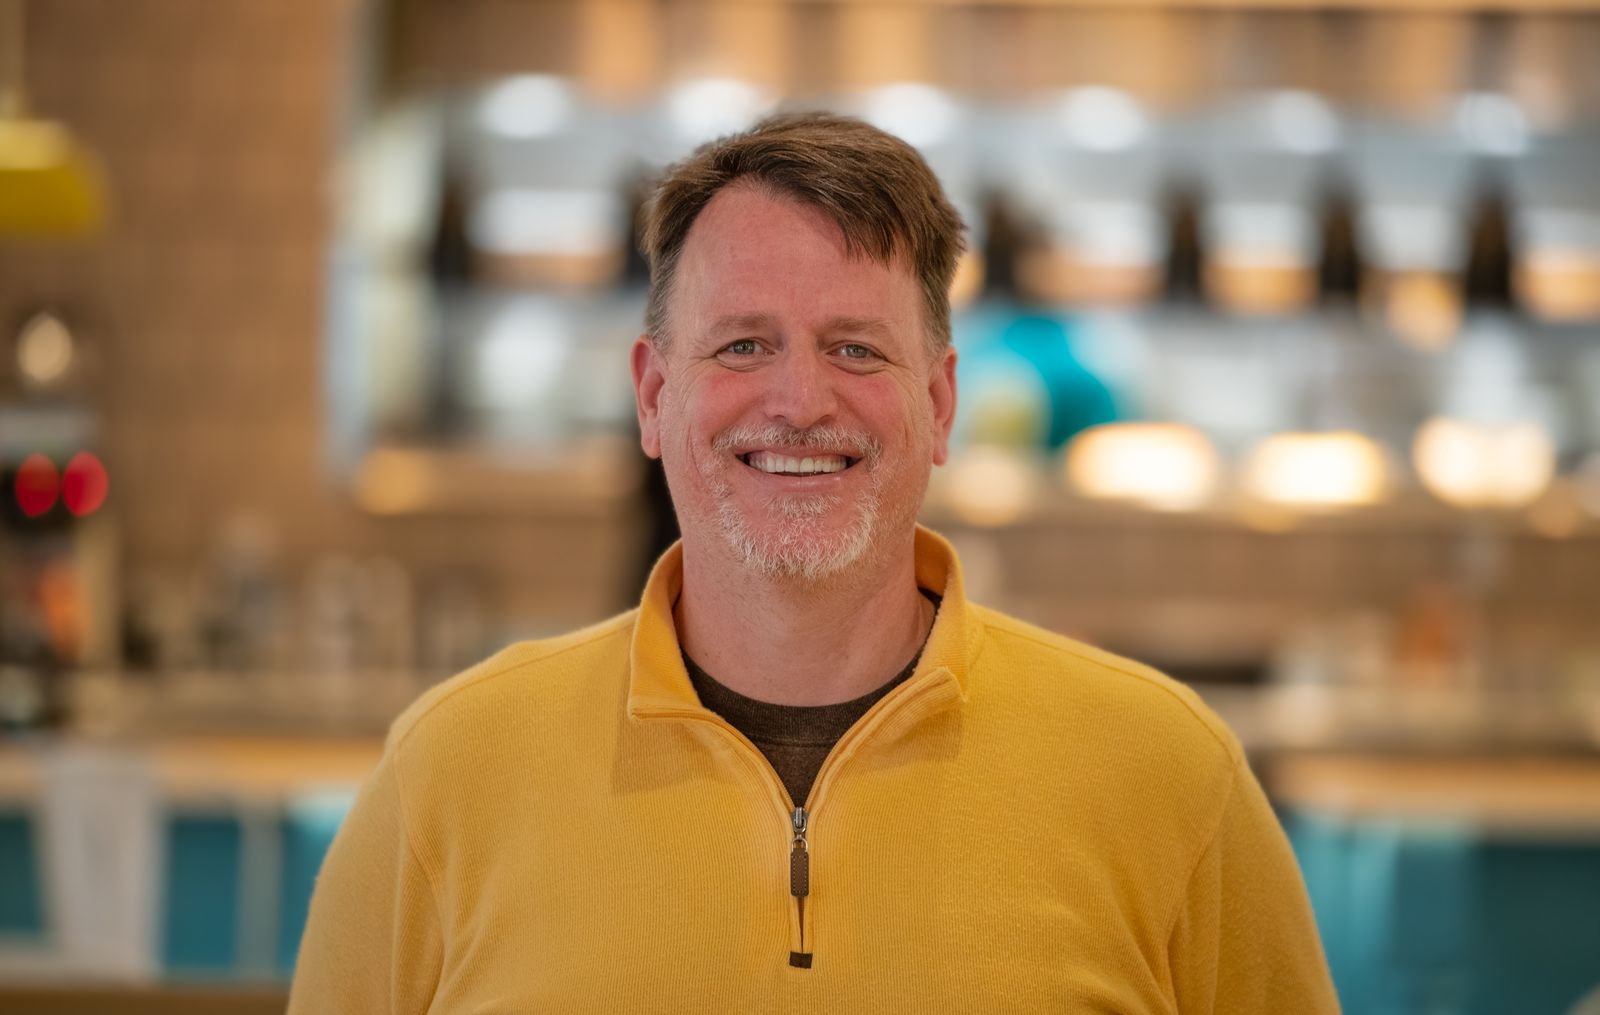 From Franchisor to Franchisee: Why Eggs Up Grill Was An Opportunity The Brand's CFO Couldn't Resist